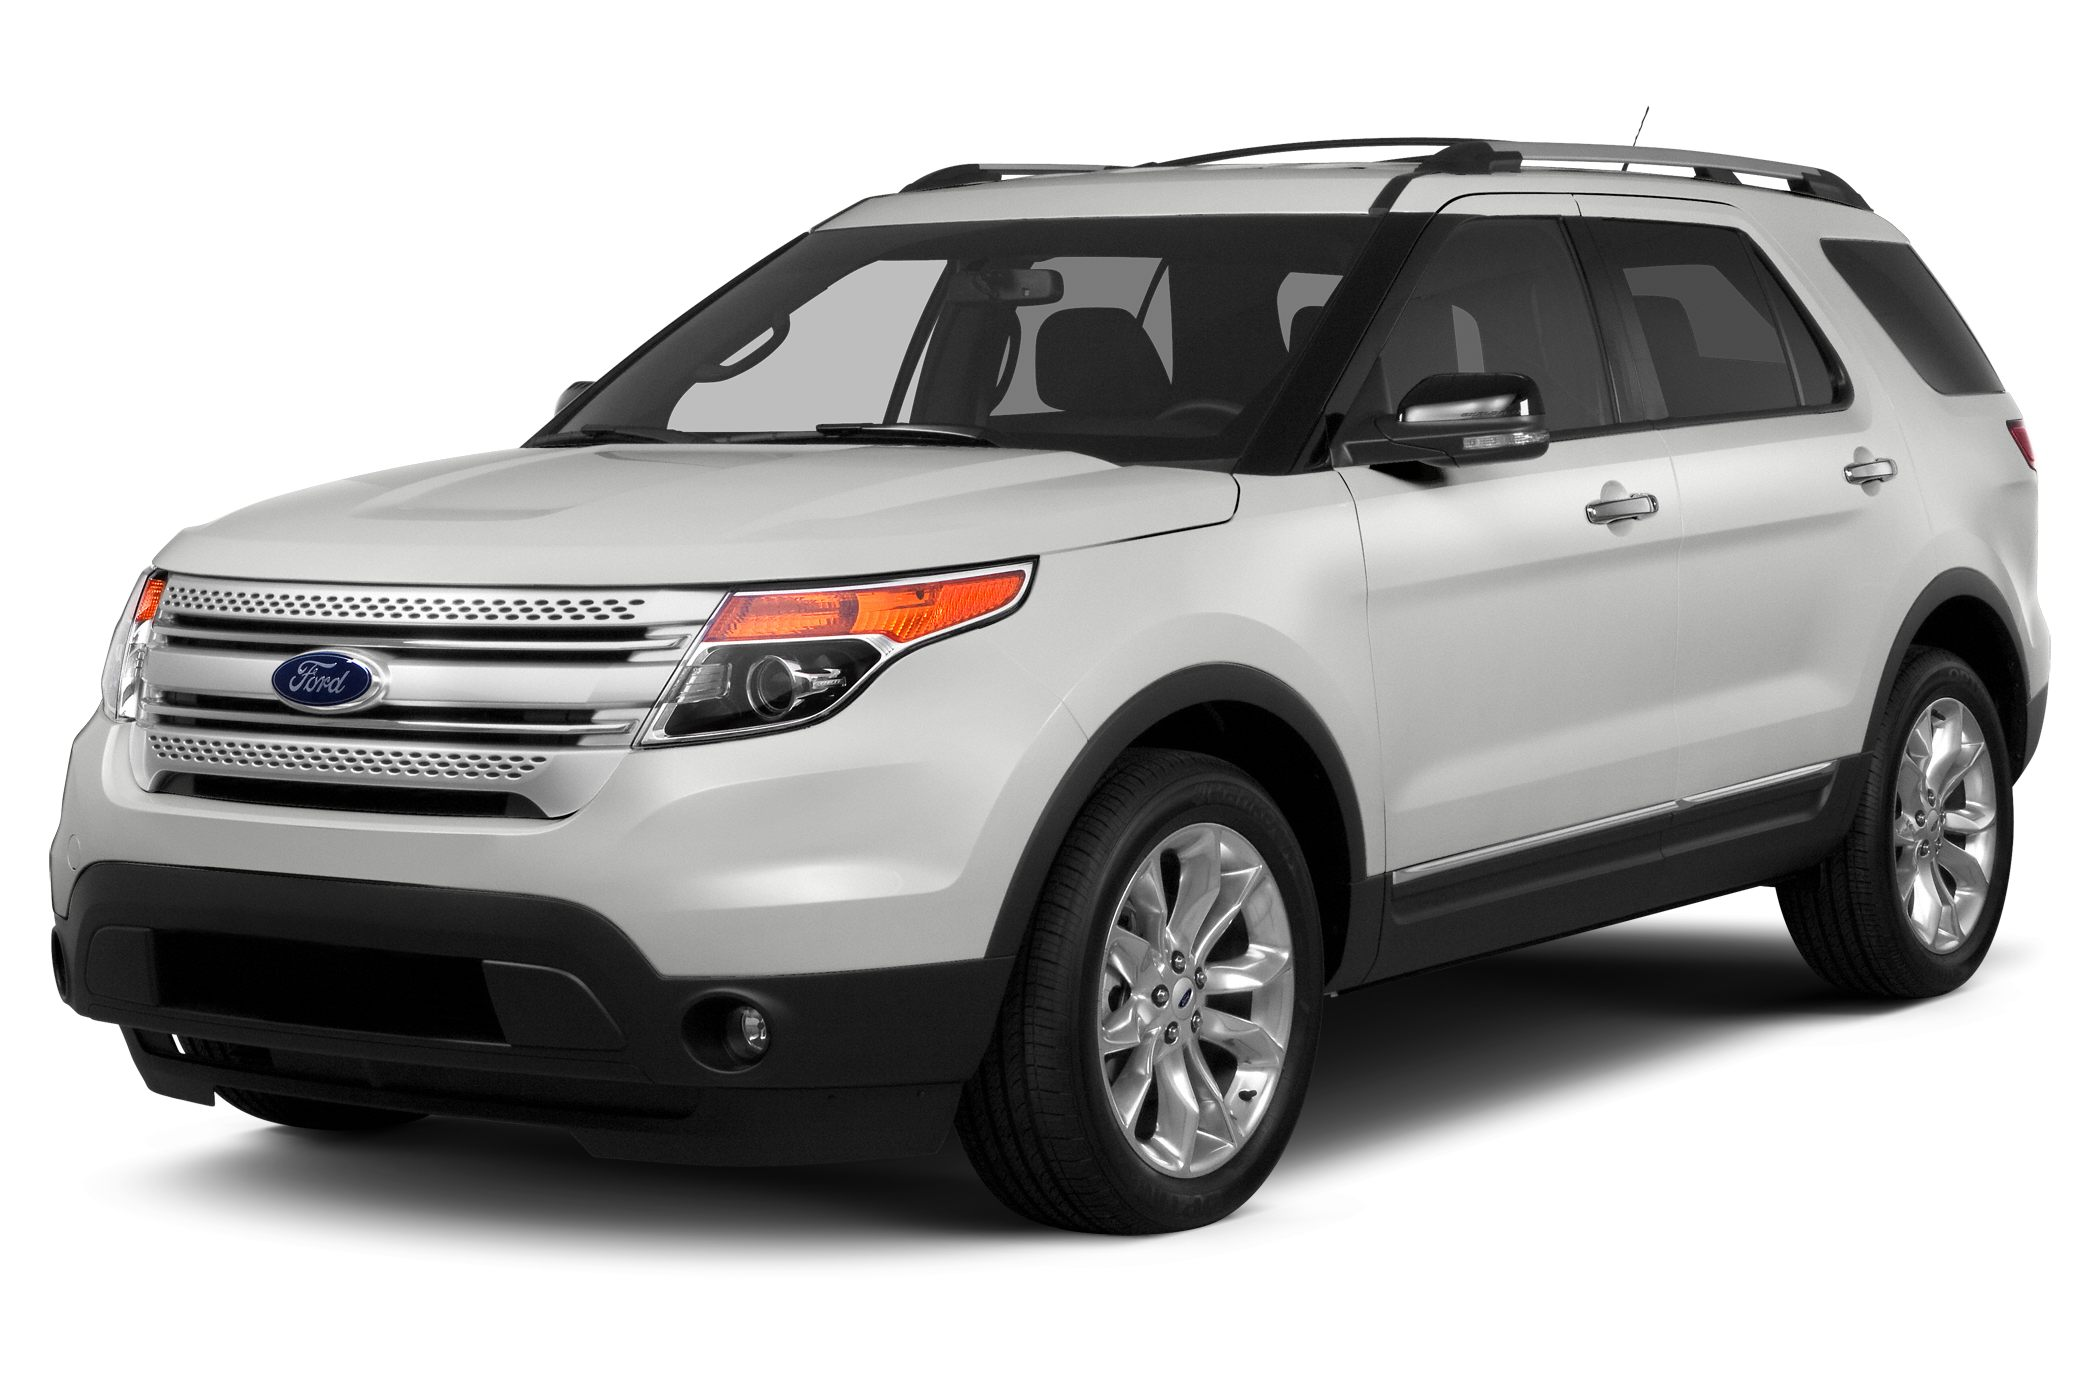 2015 Ford Explorer XLT SUV for sale in Mandeville for $42,810 with 47 miles.